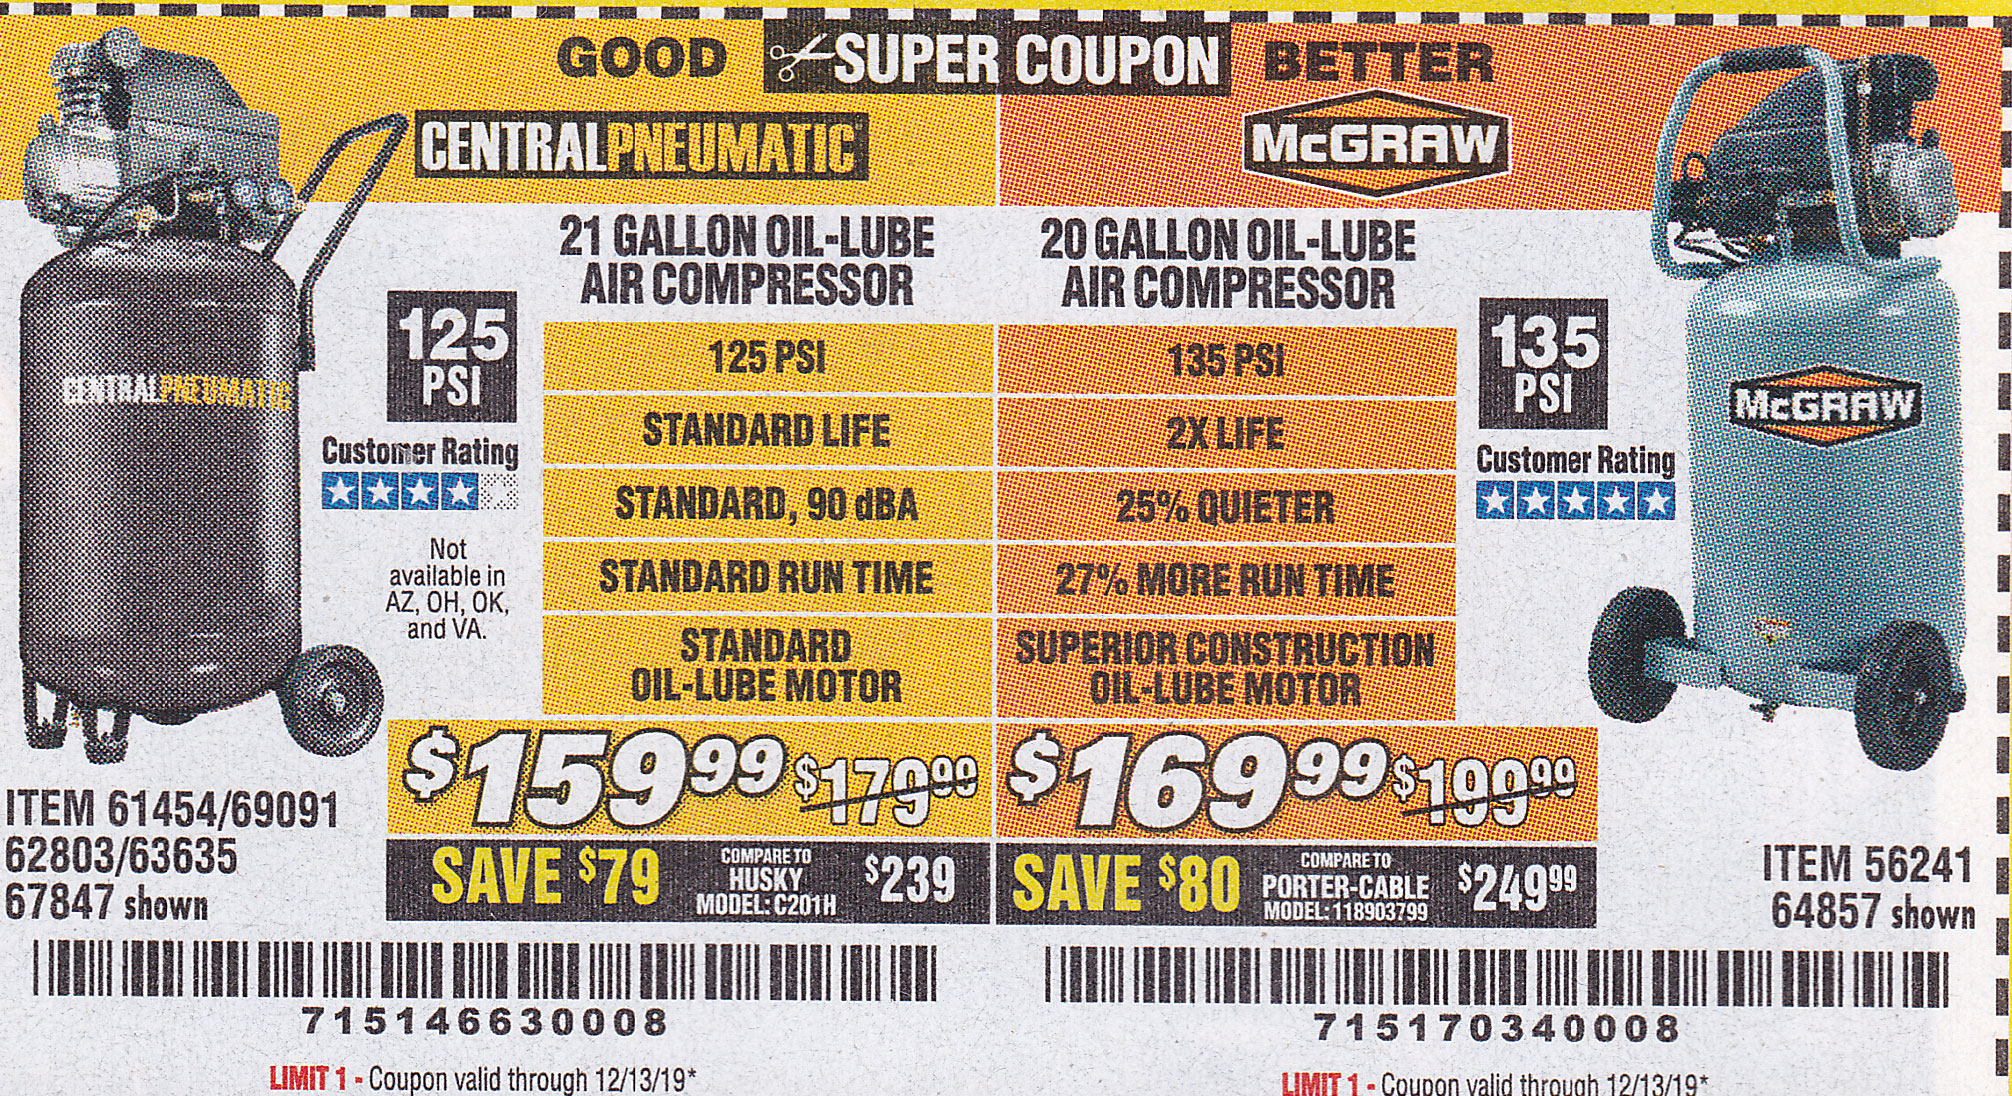 Harbor Freight MCGRAW 20 GALLON, 135 PSI OIL-LUBE AIR COMPRESSOR coupon